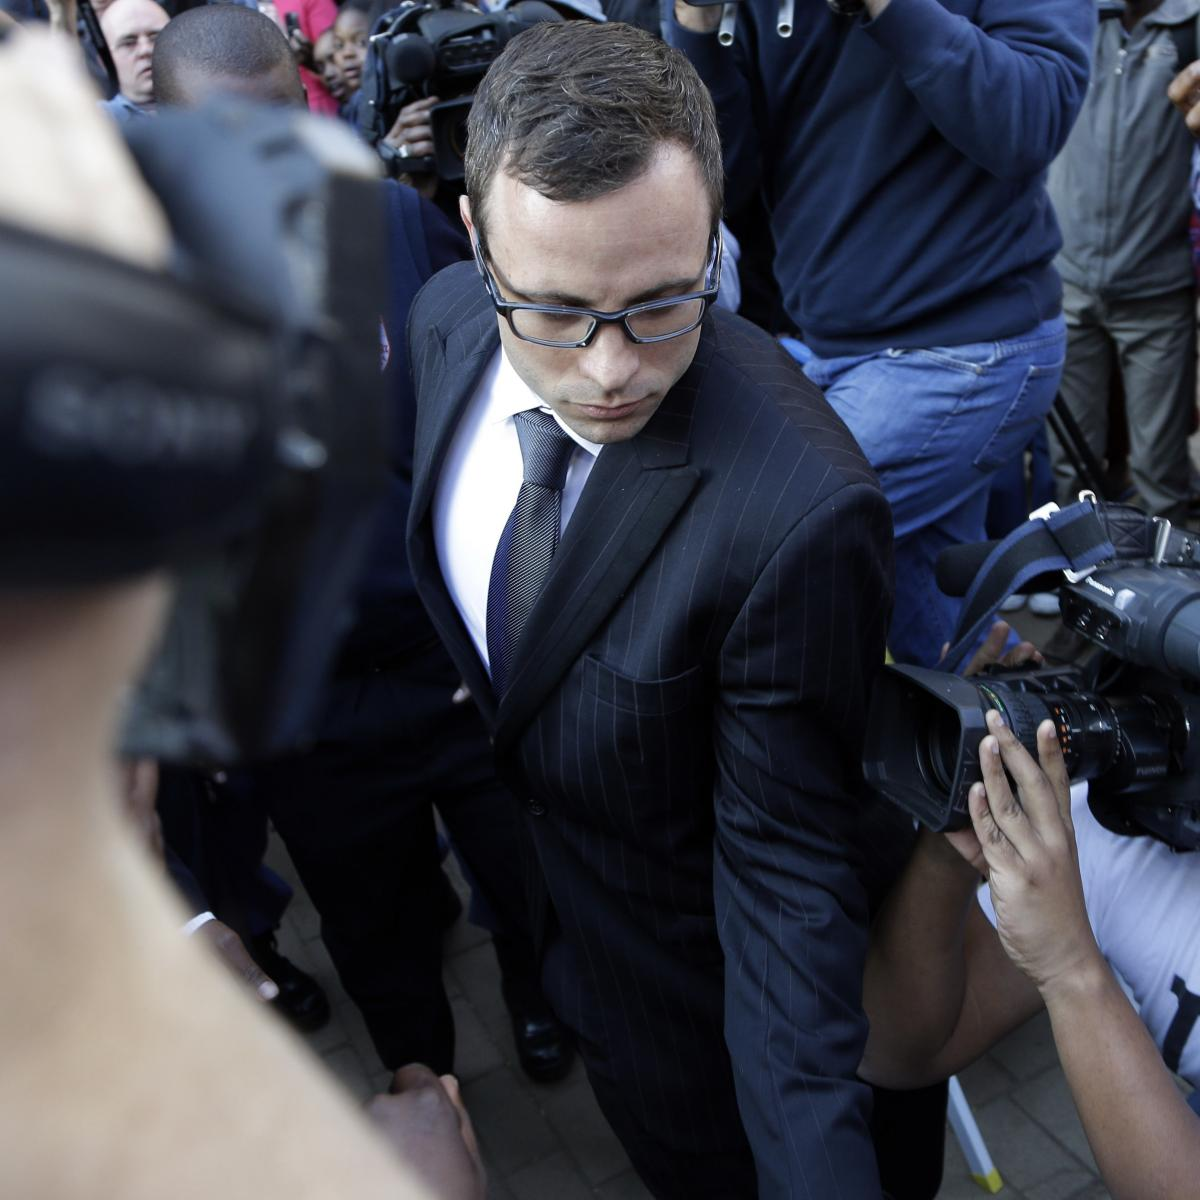 World News moreover Article 3d7b15a1 A0c5 5f74 B1e0 847cd633e657 in addition Pistorius Murder Trial Continue moreover Photos From The Travis Alexander Murder Case Graphic further Pistoriuss Lawyers Issue Statement Airing Leaked Footage. on oscar pistorius trial live stream